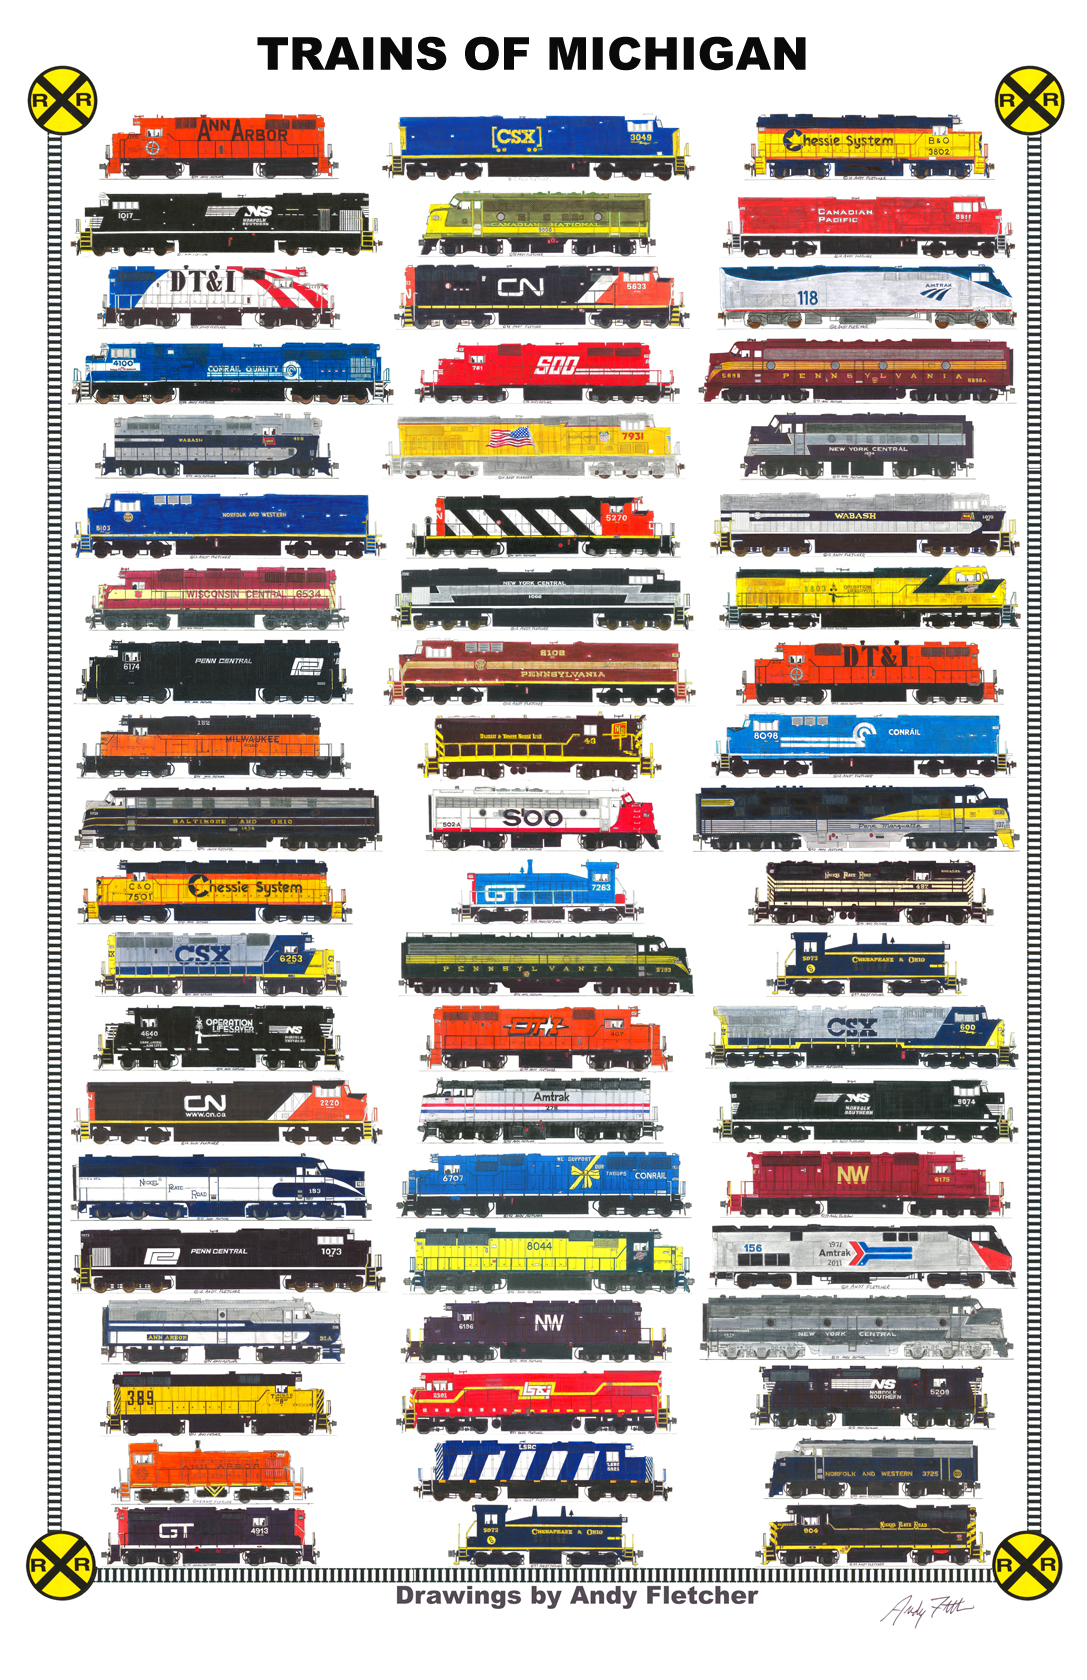 Drawn railroad andy fletcher Past of and Trains Michigan